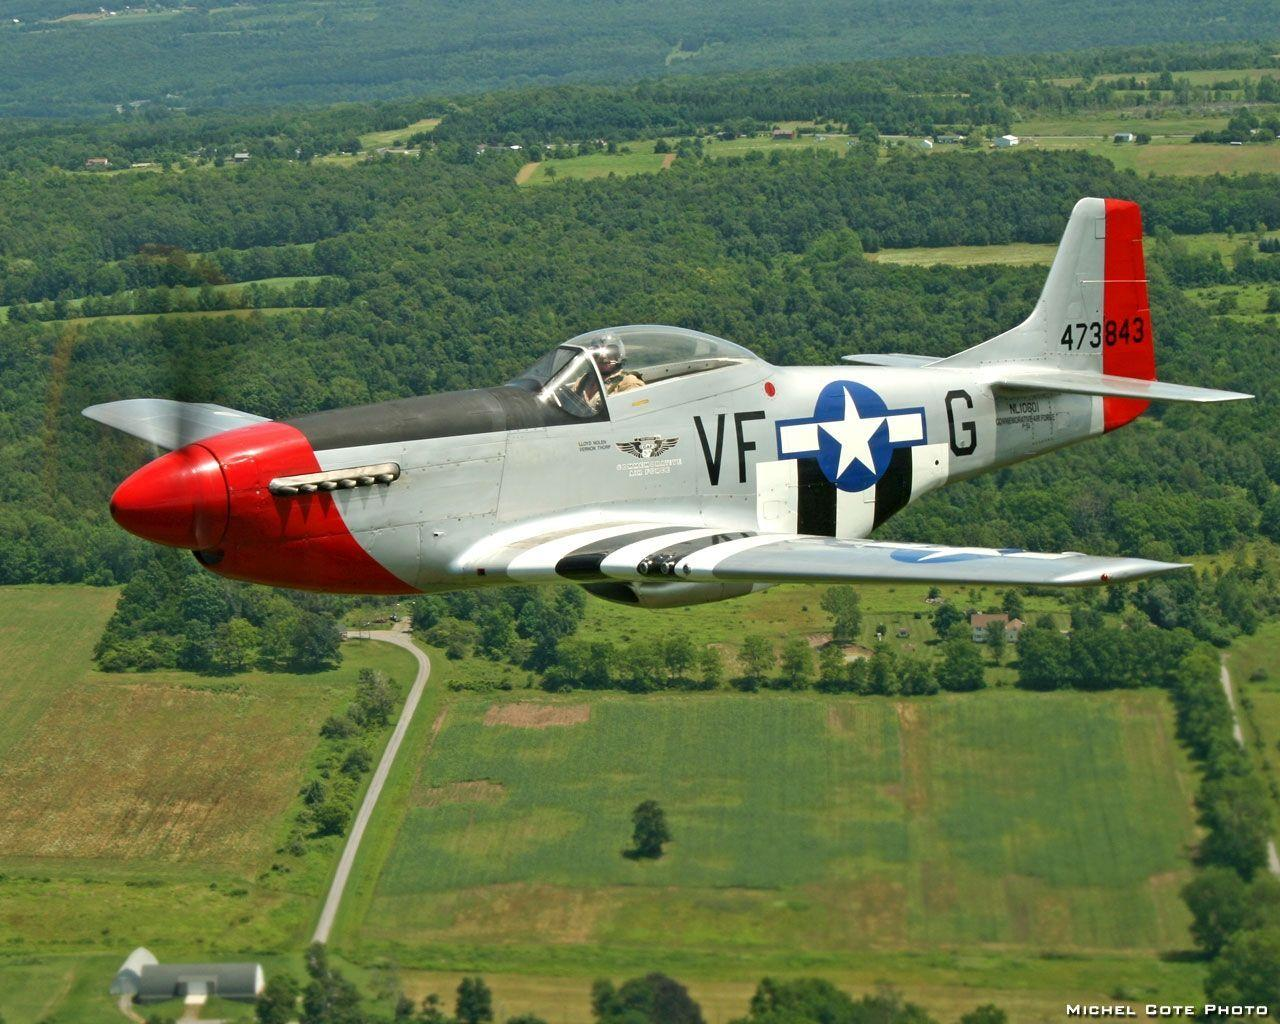 P-51 Mustang : Desktop and mobile wallpaper : Wallippo